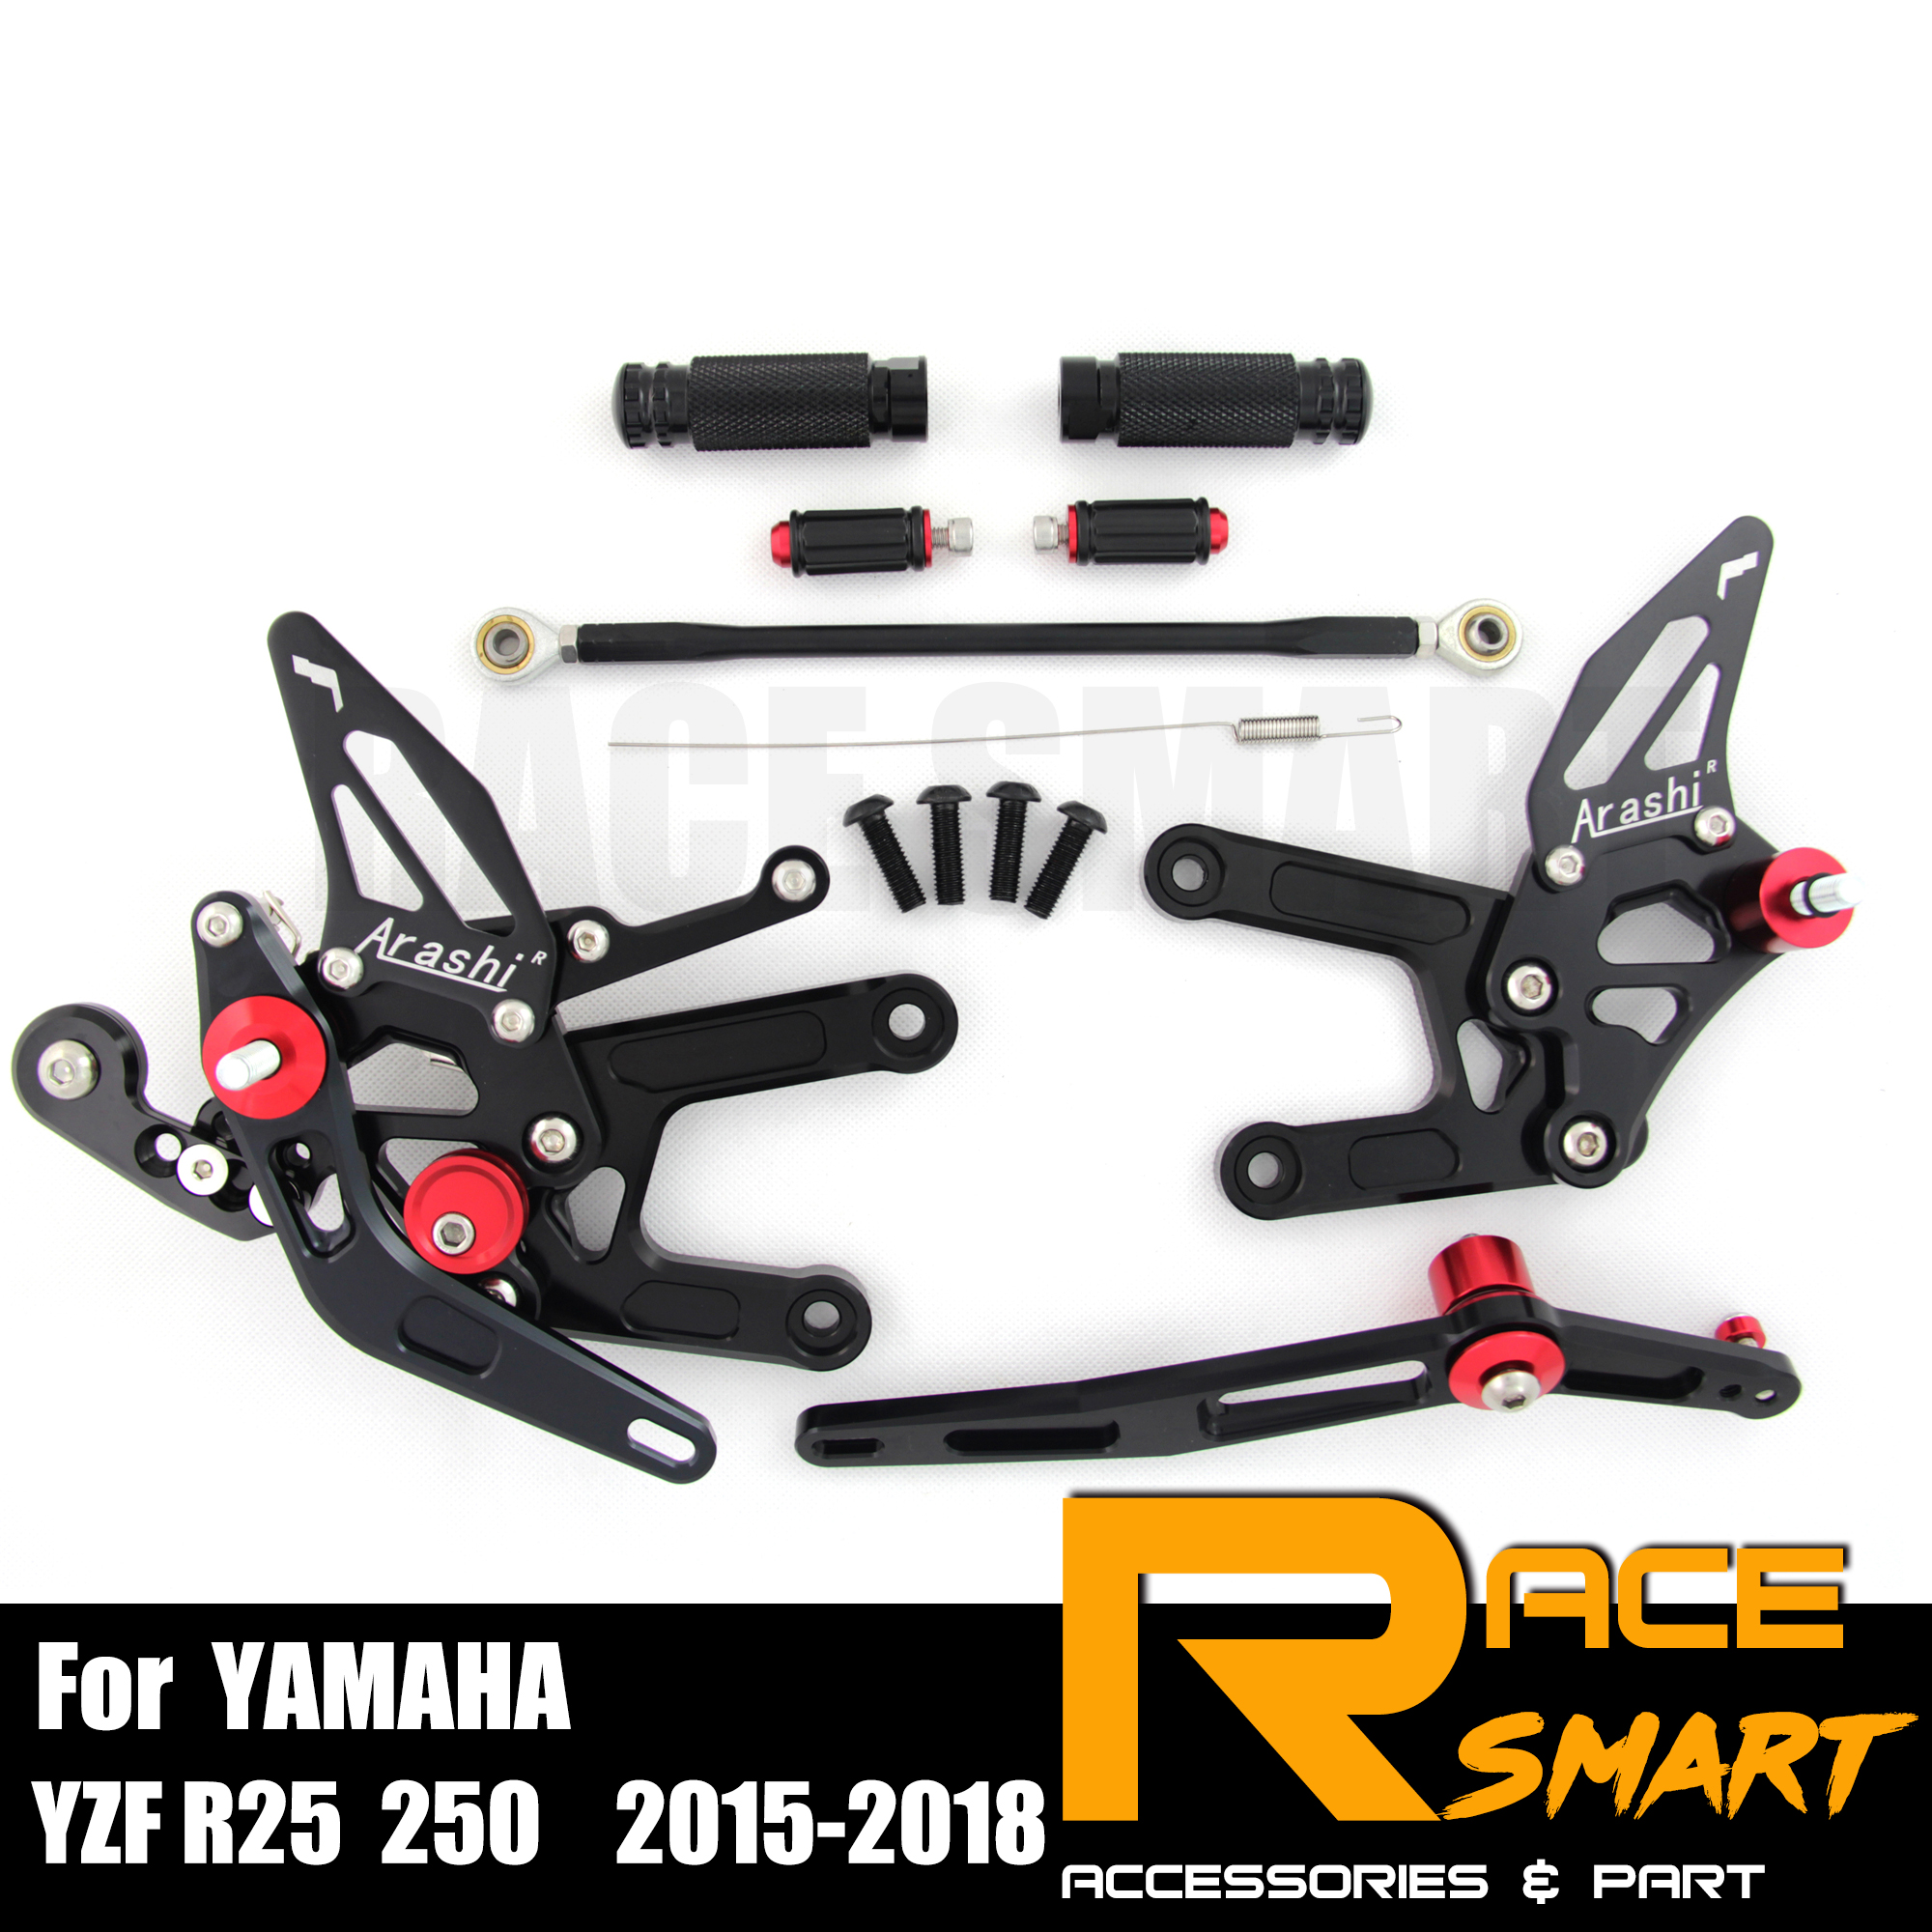 For YAMAHA R3 2015 - 2018 250CC CNC Adjustable Rearset Footpegs Footrest Foot Rest Pegs Pedal Motorcycle Accessories 2016 2017